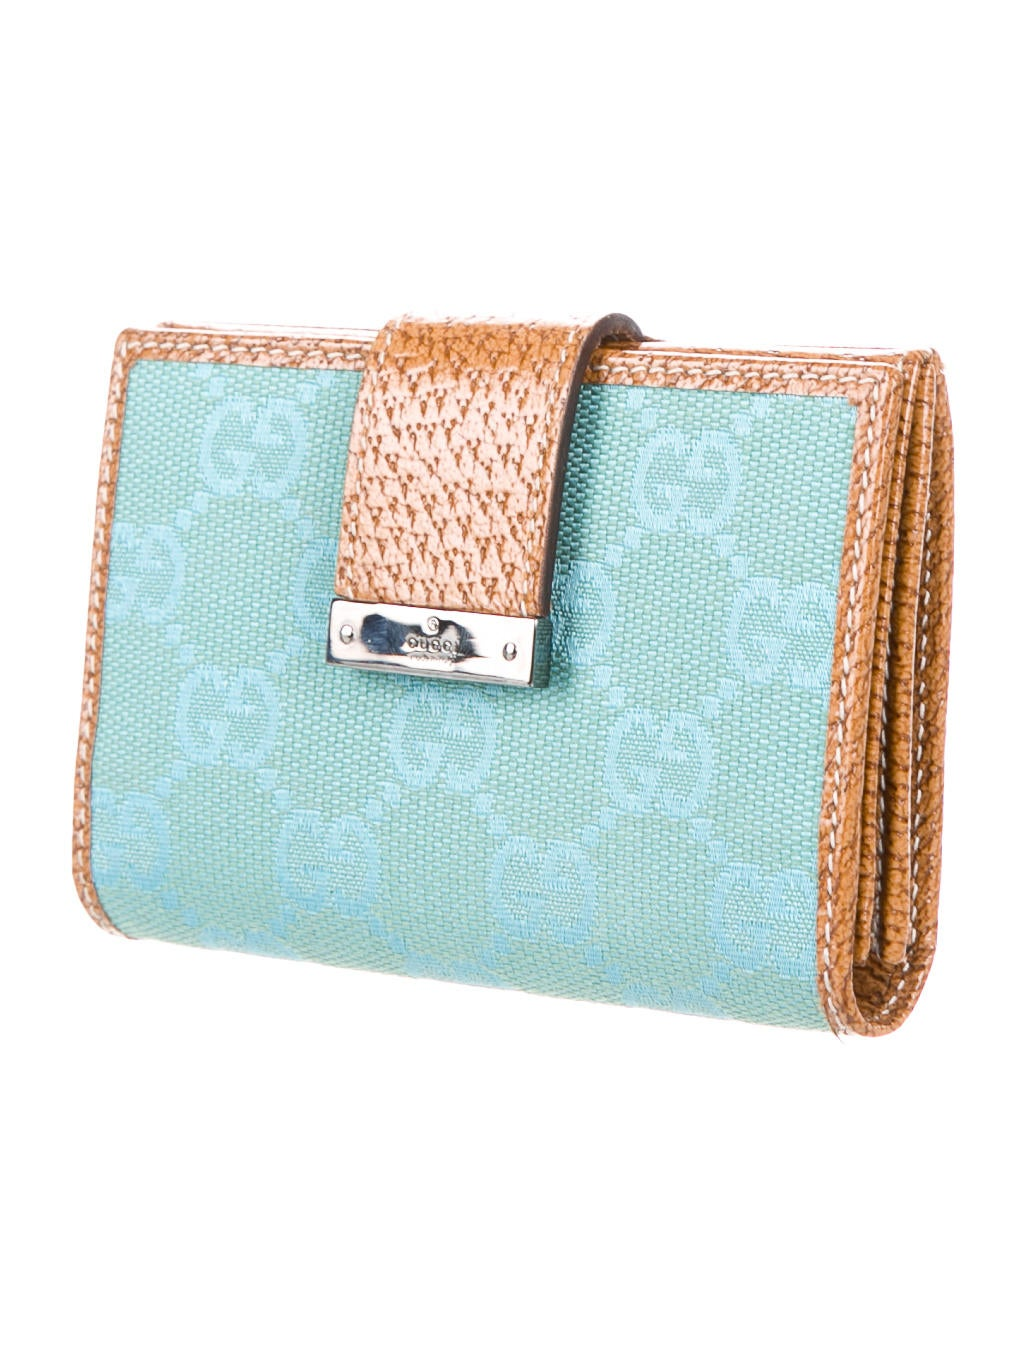 Gucci GG Plus Business Card Holder - Accessories - GUC193411   The ...